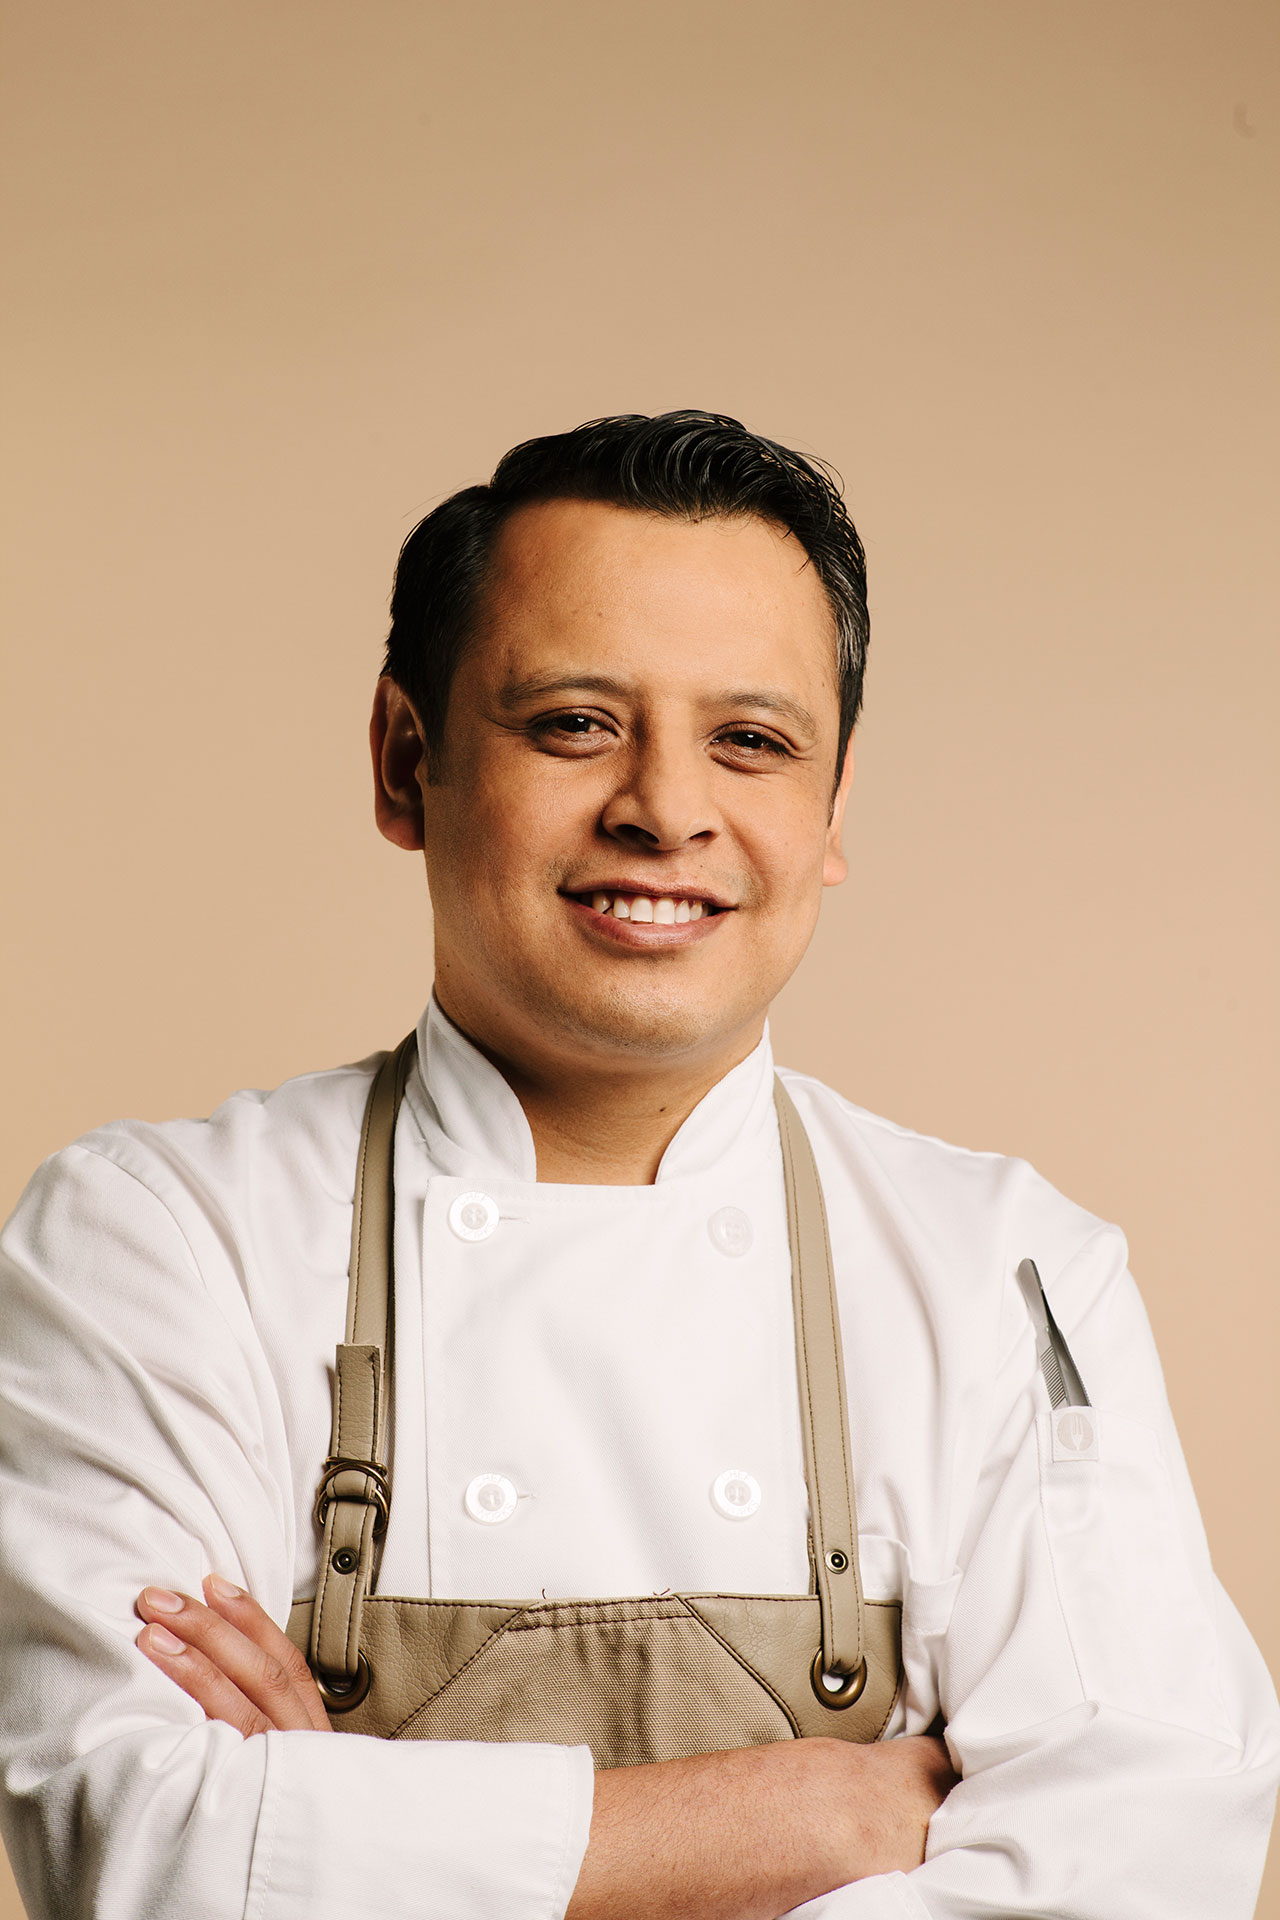 Hector Laguna, Executive Chef. Photo by Grady Mitchell via v2com.